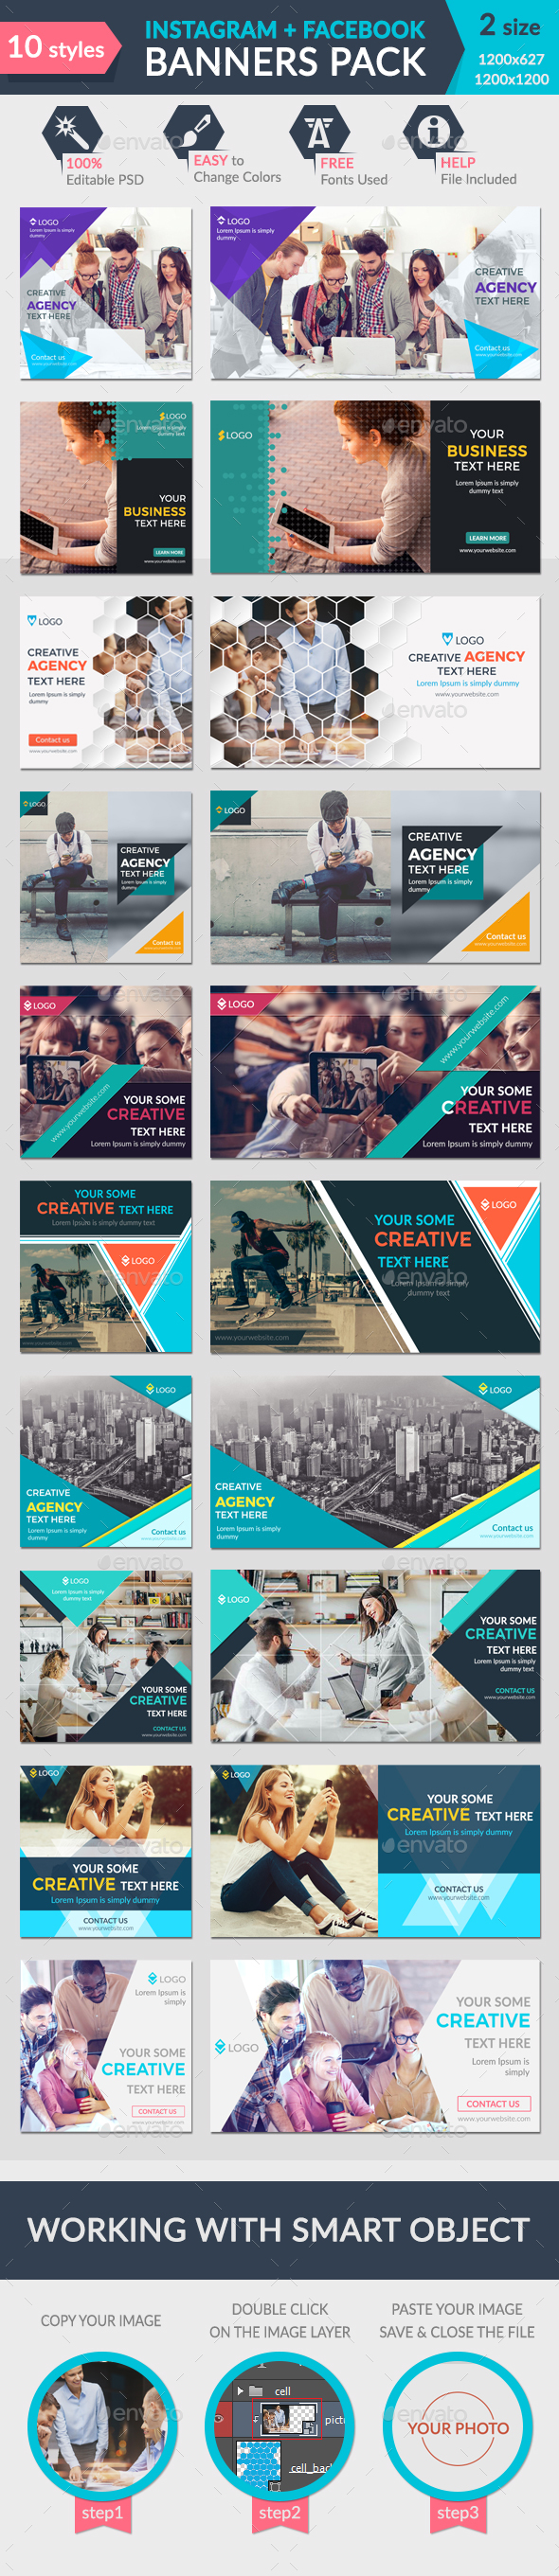 Facebook + Instagram Banners Pack-2 - Banners & Ads Web Elements